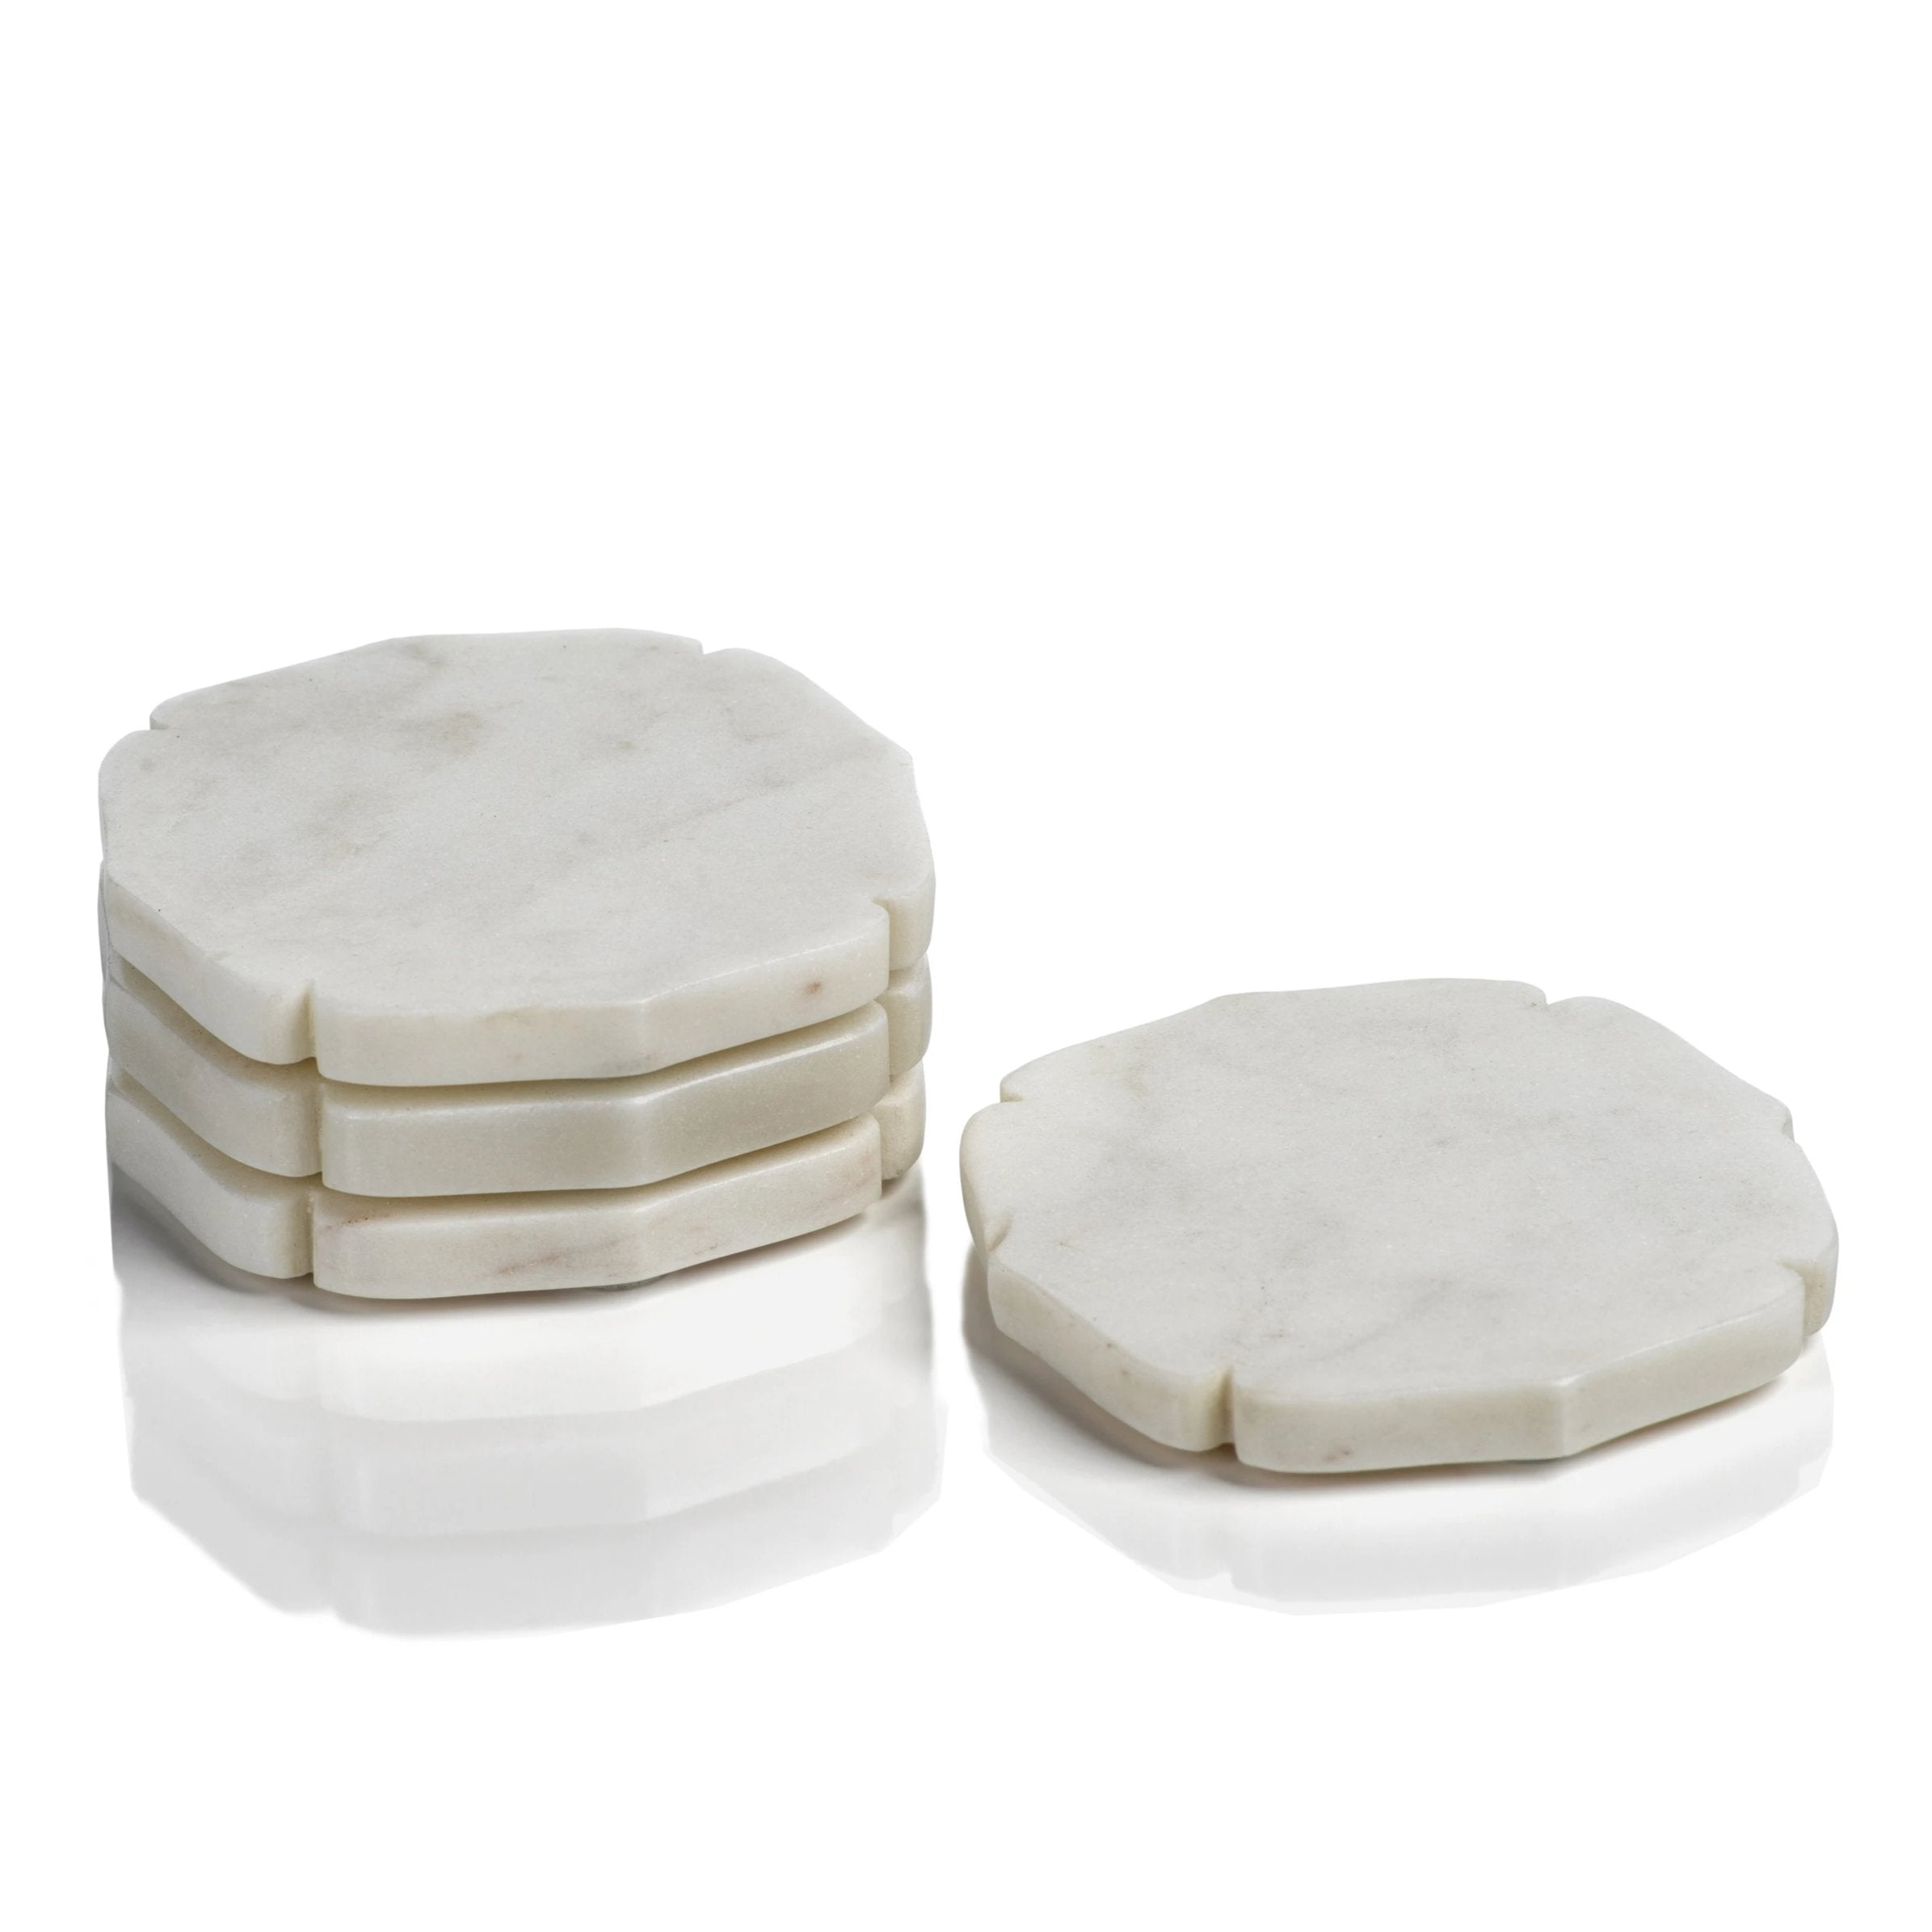 Set of 4 White Marble Coasters - CARLYLE AVENUE